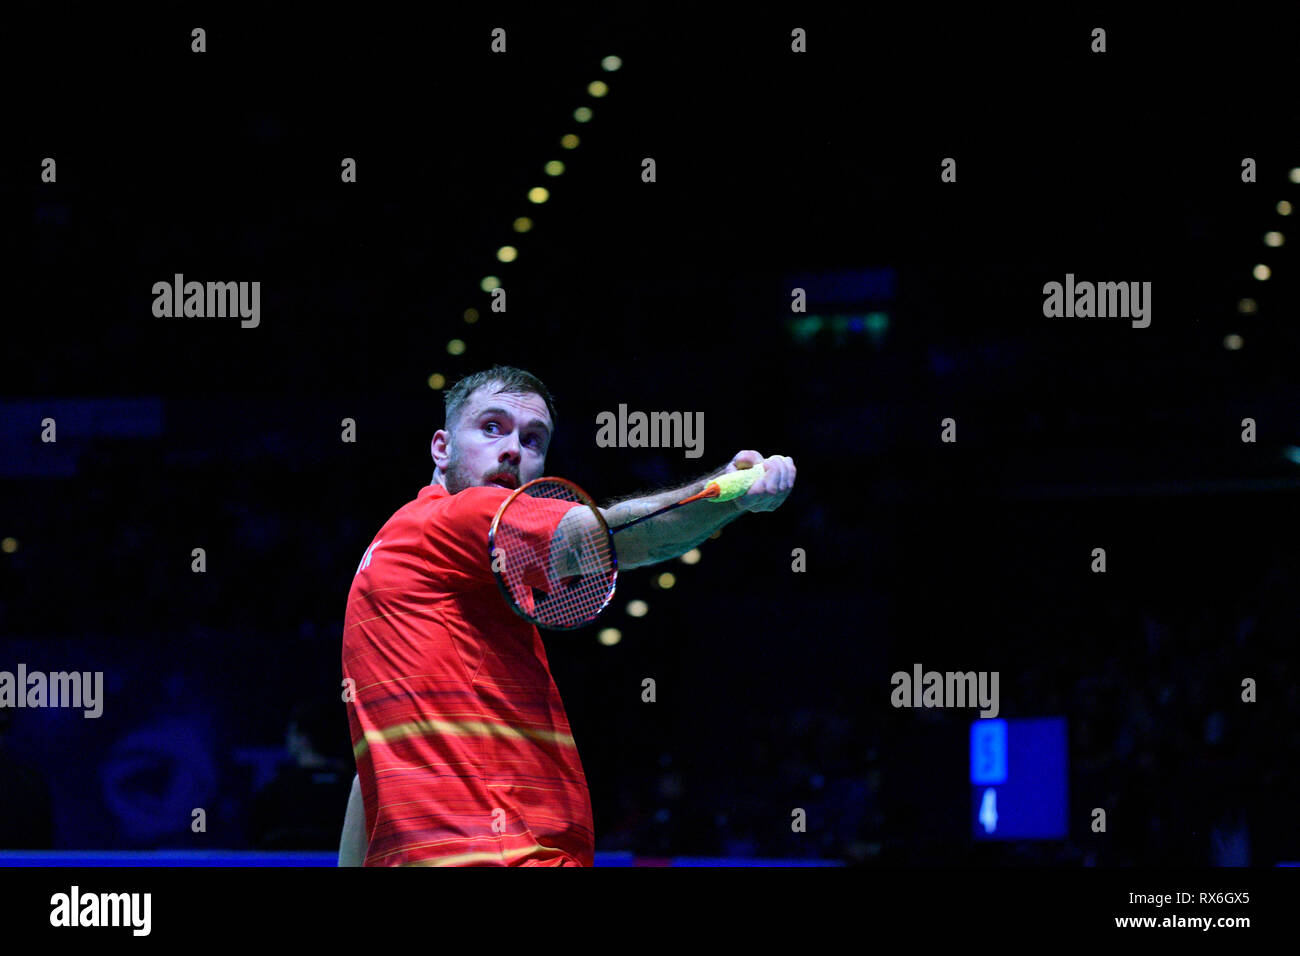 Birmingham, UK. 8th Mar 2019. All England Open Badminton Championships :DAY 3 BIRMINGHAM, ENGLAND - MARCH 8 : MEN'Singles, Jan JORGENSEN of DENMARK in action at the Yonex All England Open Badminton Championships at Arena Birmingham on March 8, 2019 Birmingham, England Credit: PATRICK ANTHONISZ/Alamy Live News - Stock Image